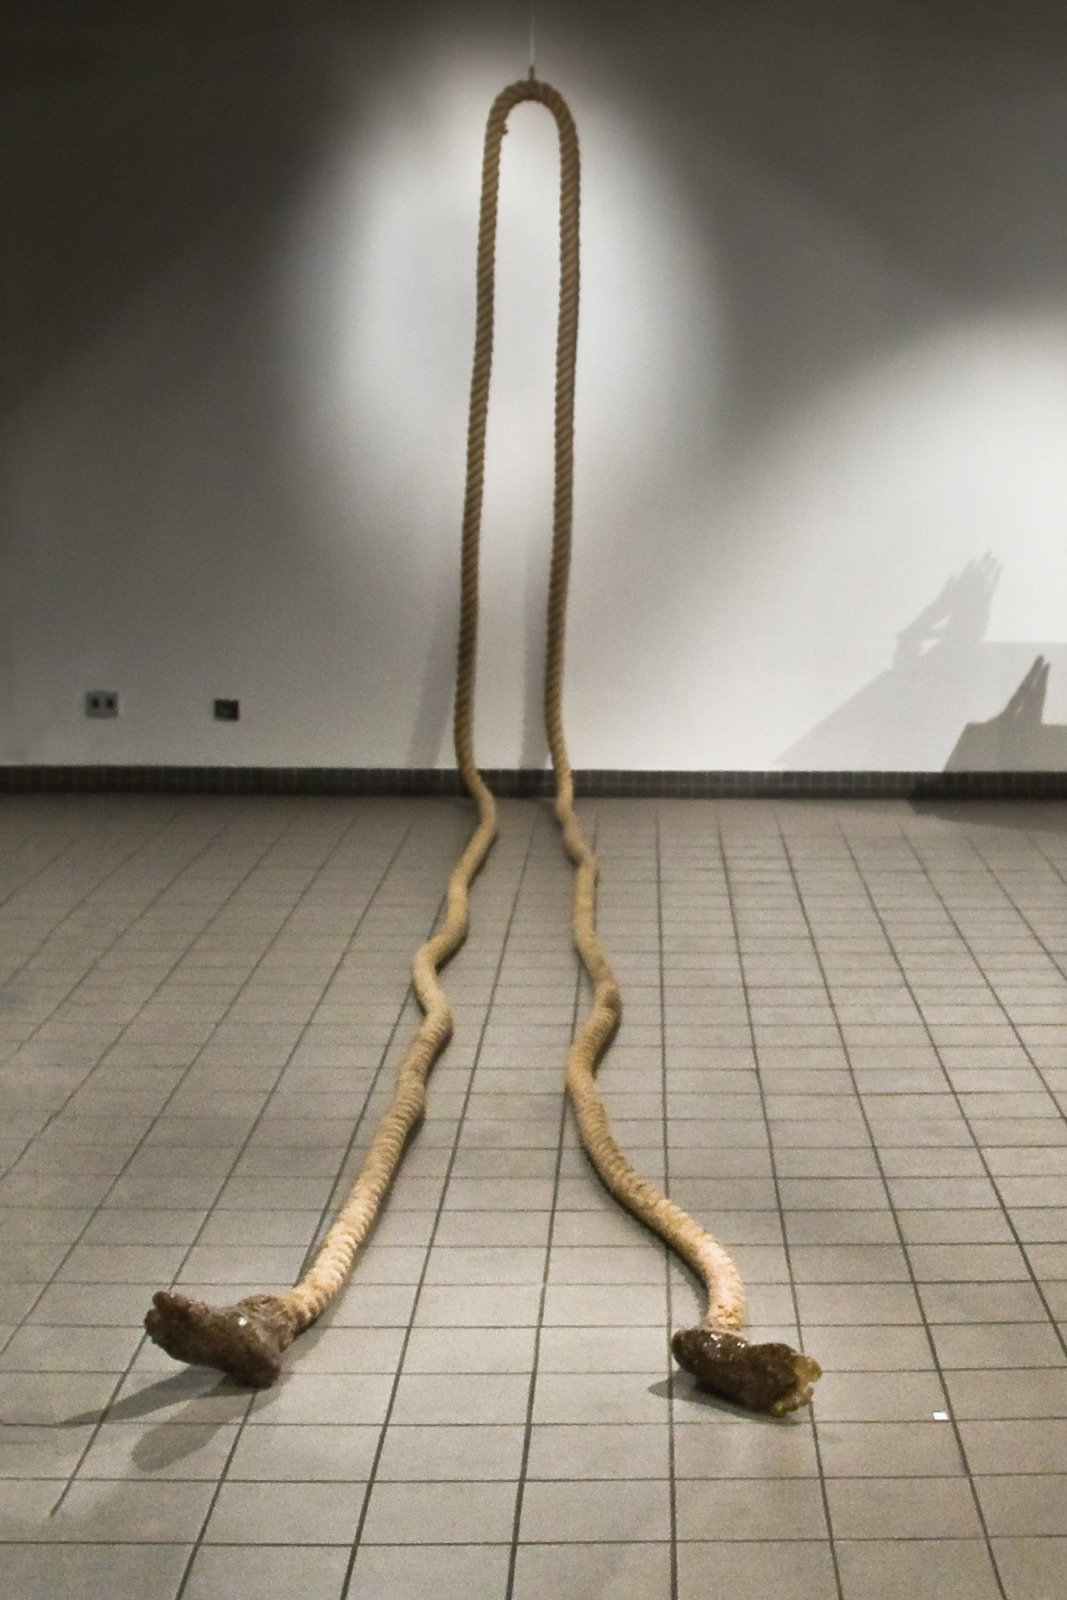 Footsie, 2007, 20 meters of 6cm thick rope, feet 23 cm x 10 cm x 10 cm, Epoxy Resin, Installation variable, Rope, Resin